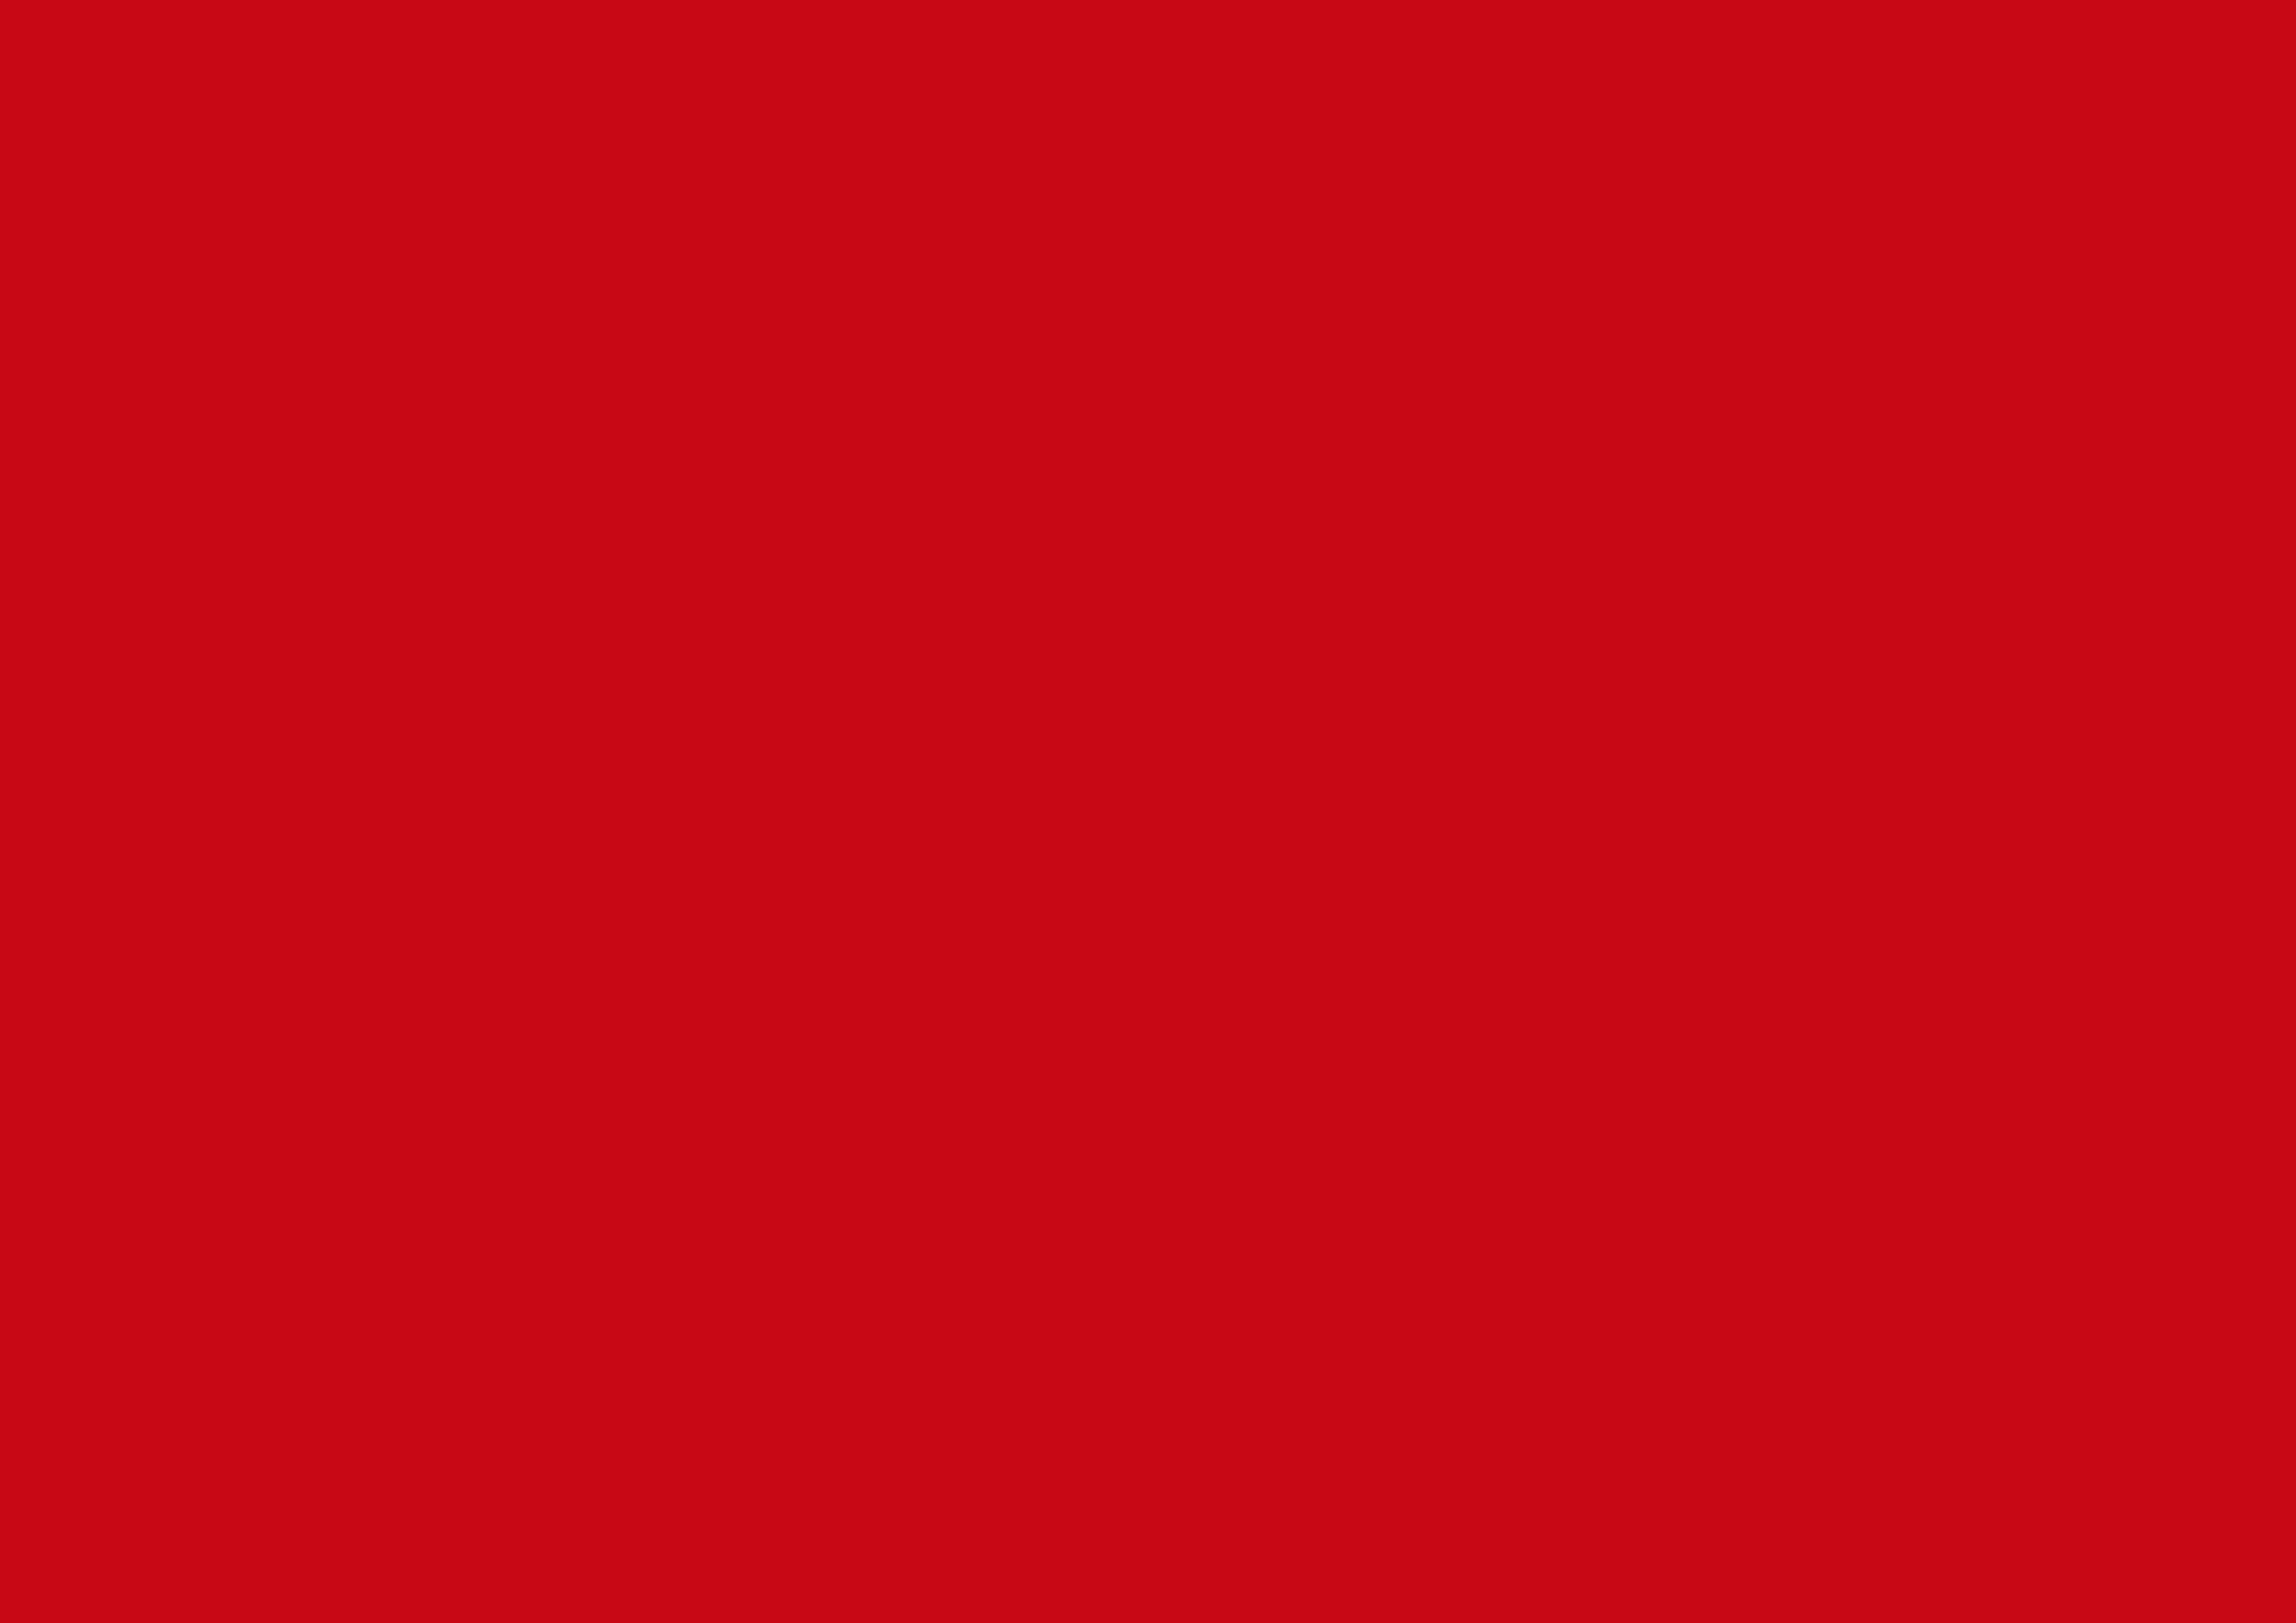 3508x2480 Venetian Red Solid Color Background